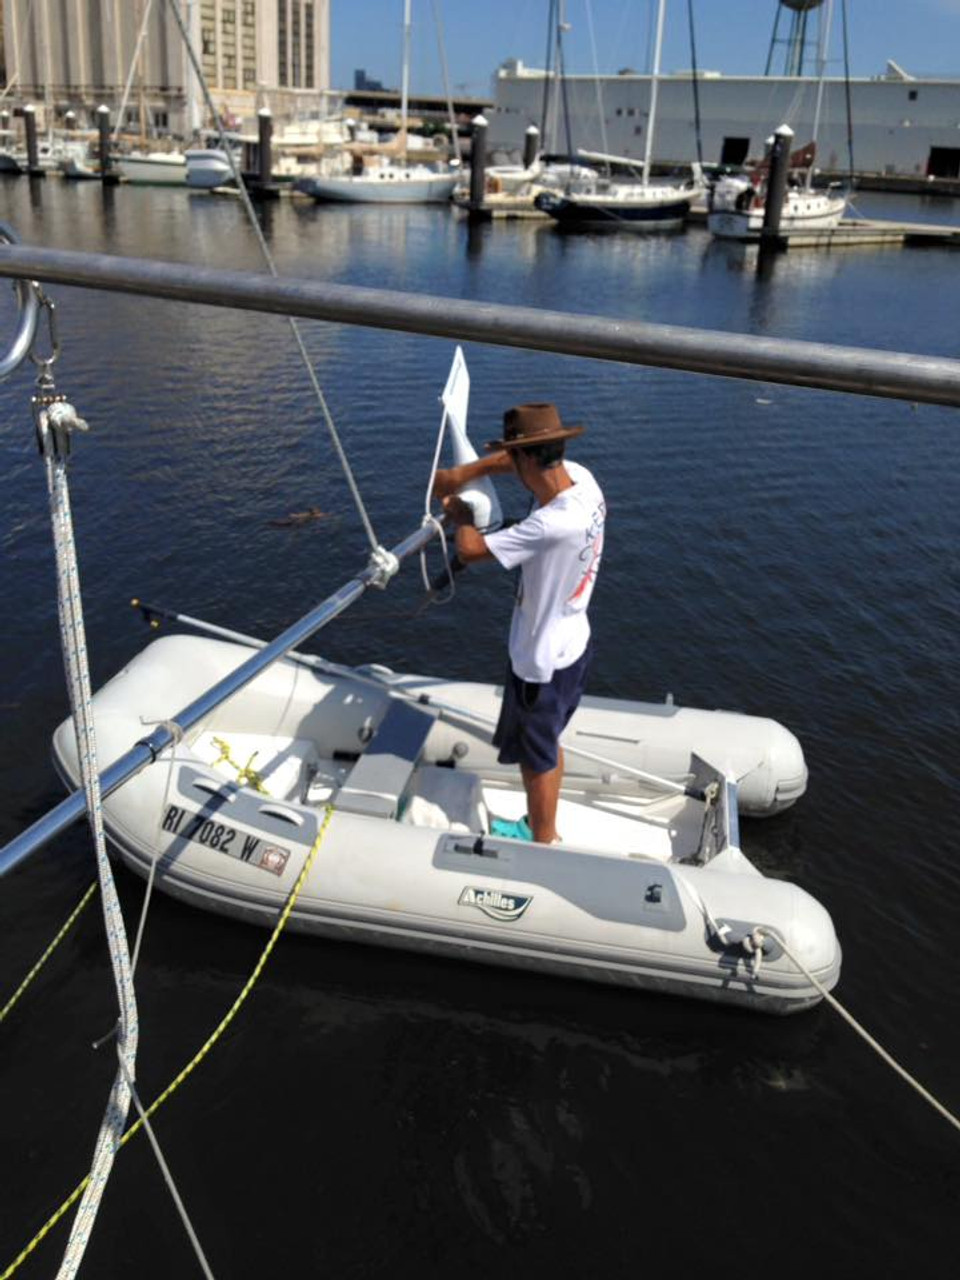 The hinged base-mount allows the pole to be pivoted down for access to the wind generator